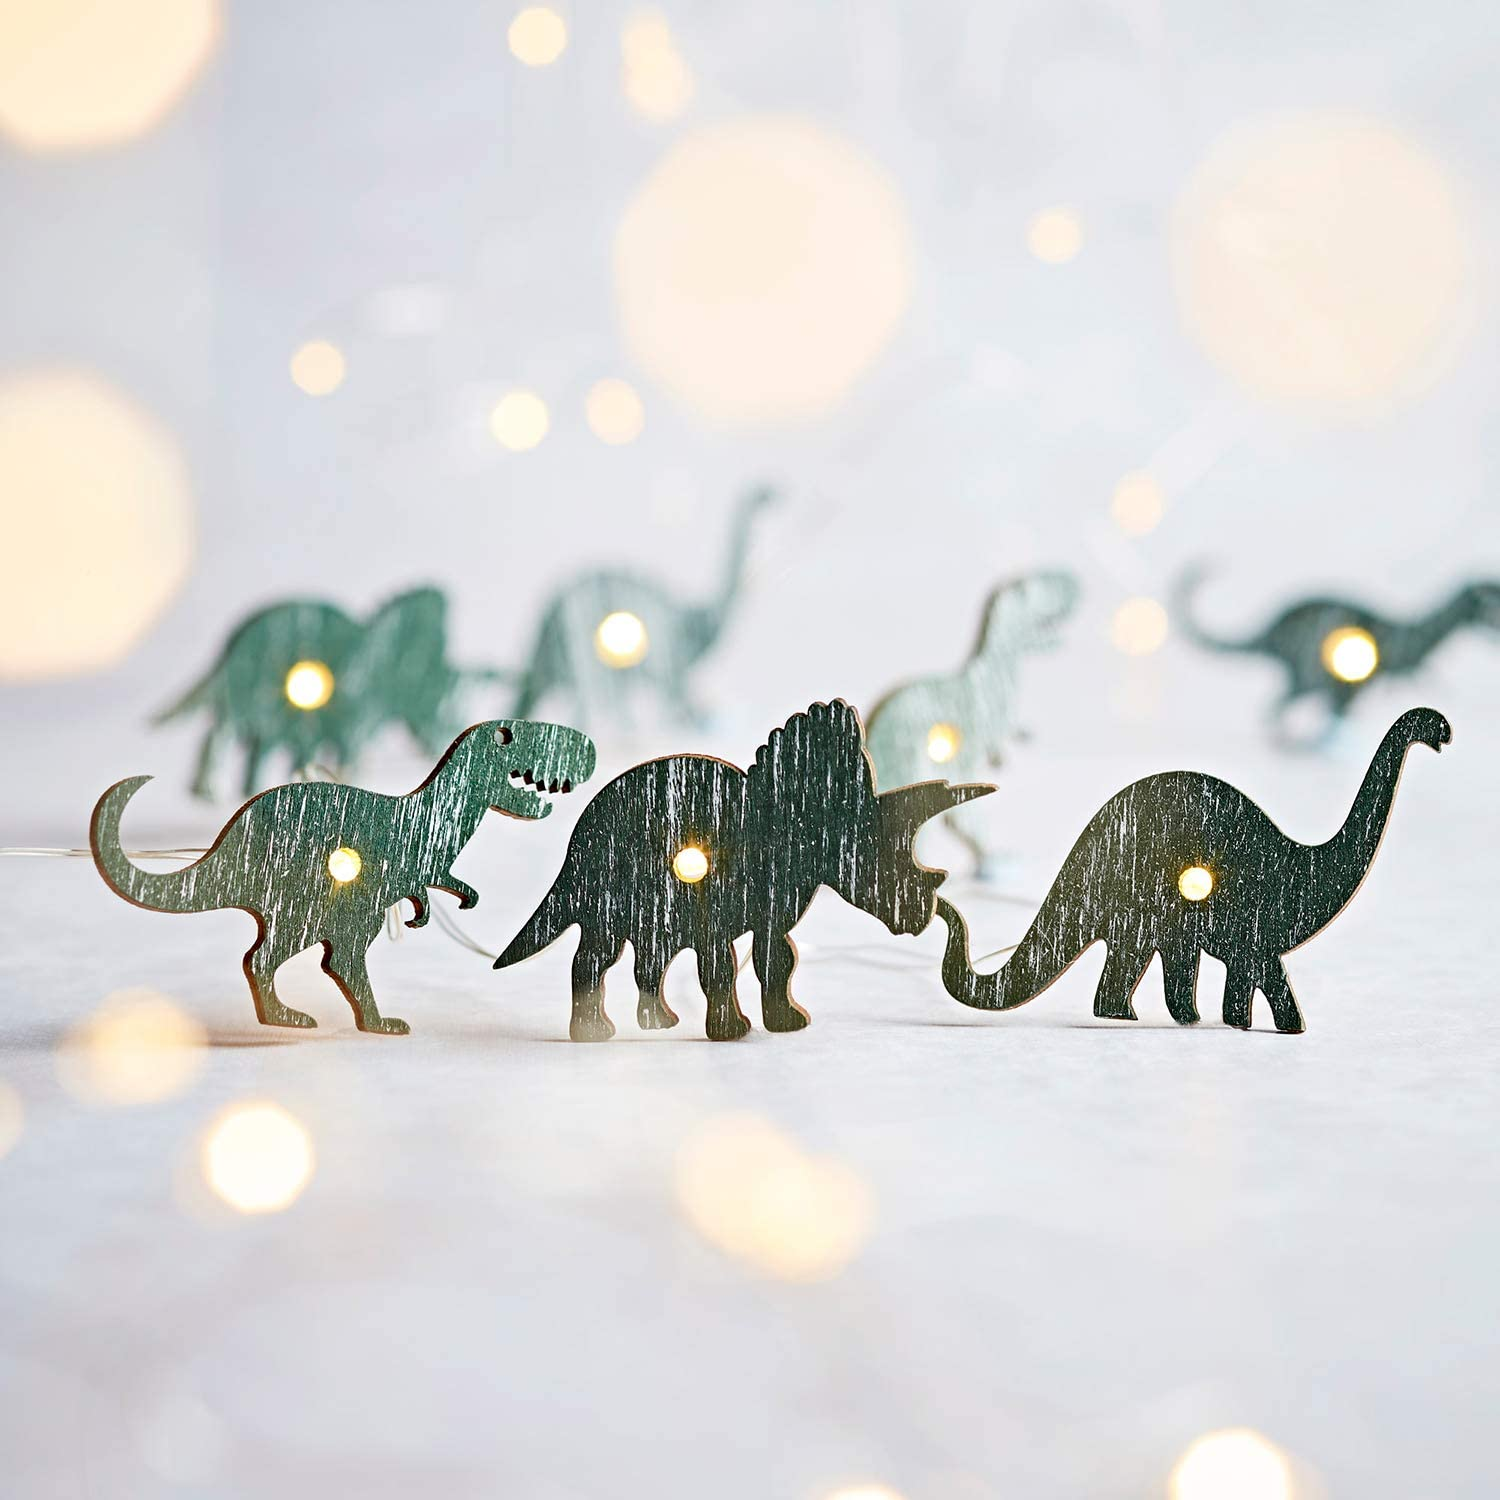 Lights4fun, Inc. 20 Dinosaur Battery Operated Micro LED Indoor Silver Wire String Lights